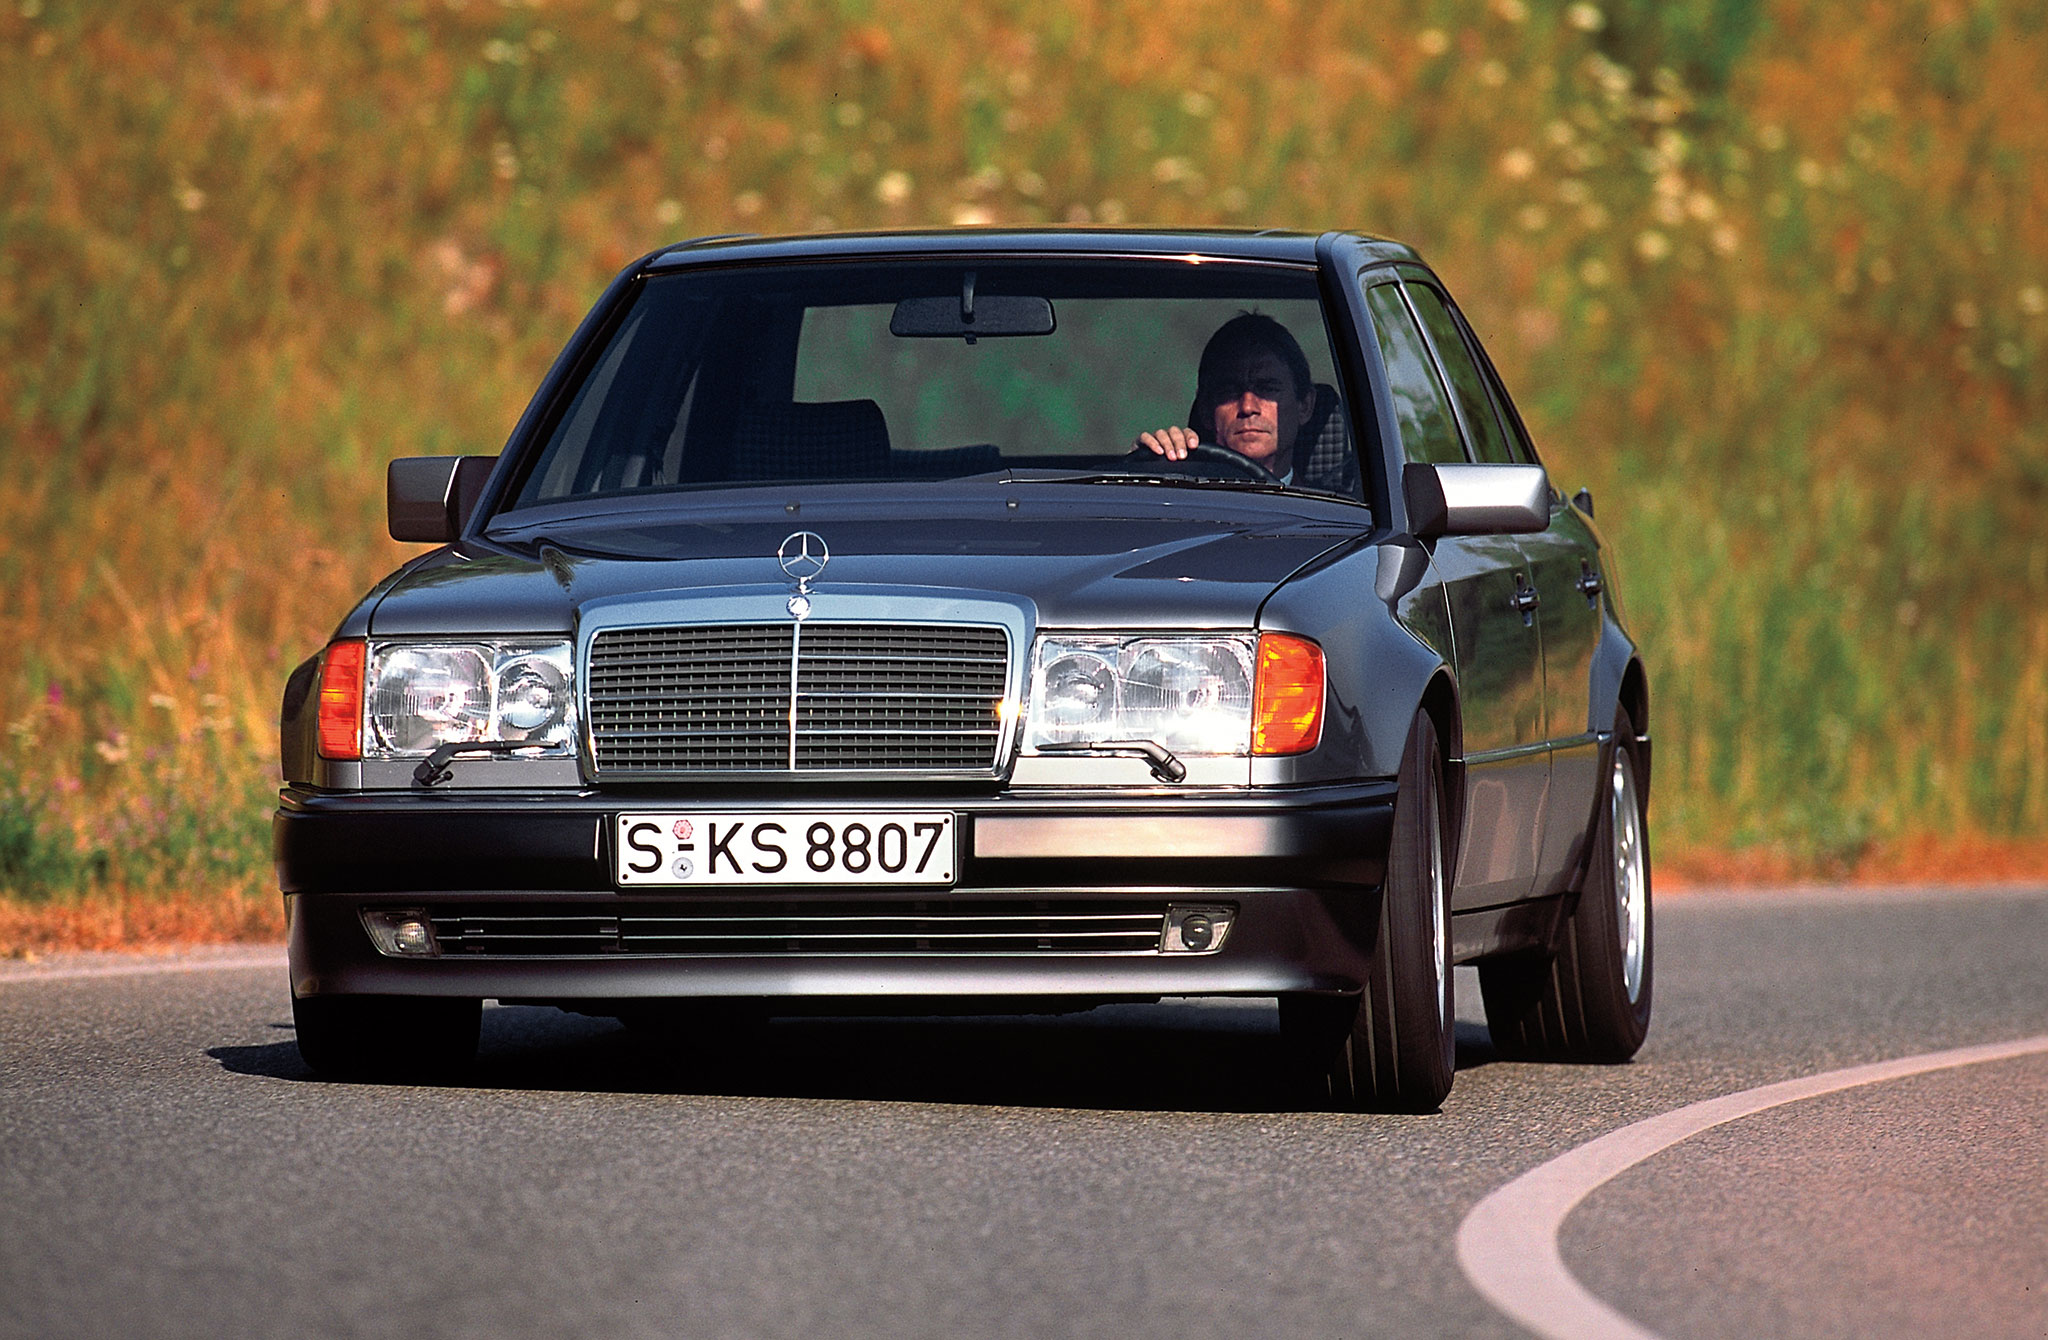 1991-1994 Mercedes-Benz 500E / E500 W124 - Clic Revisited on